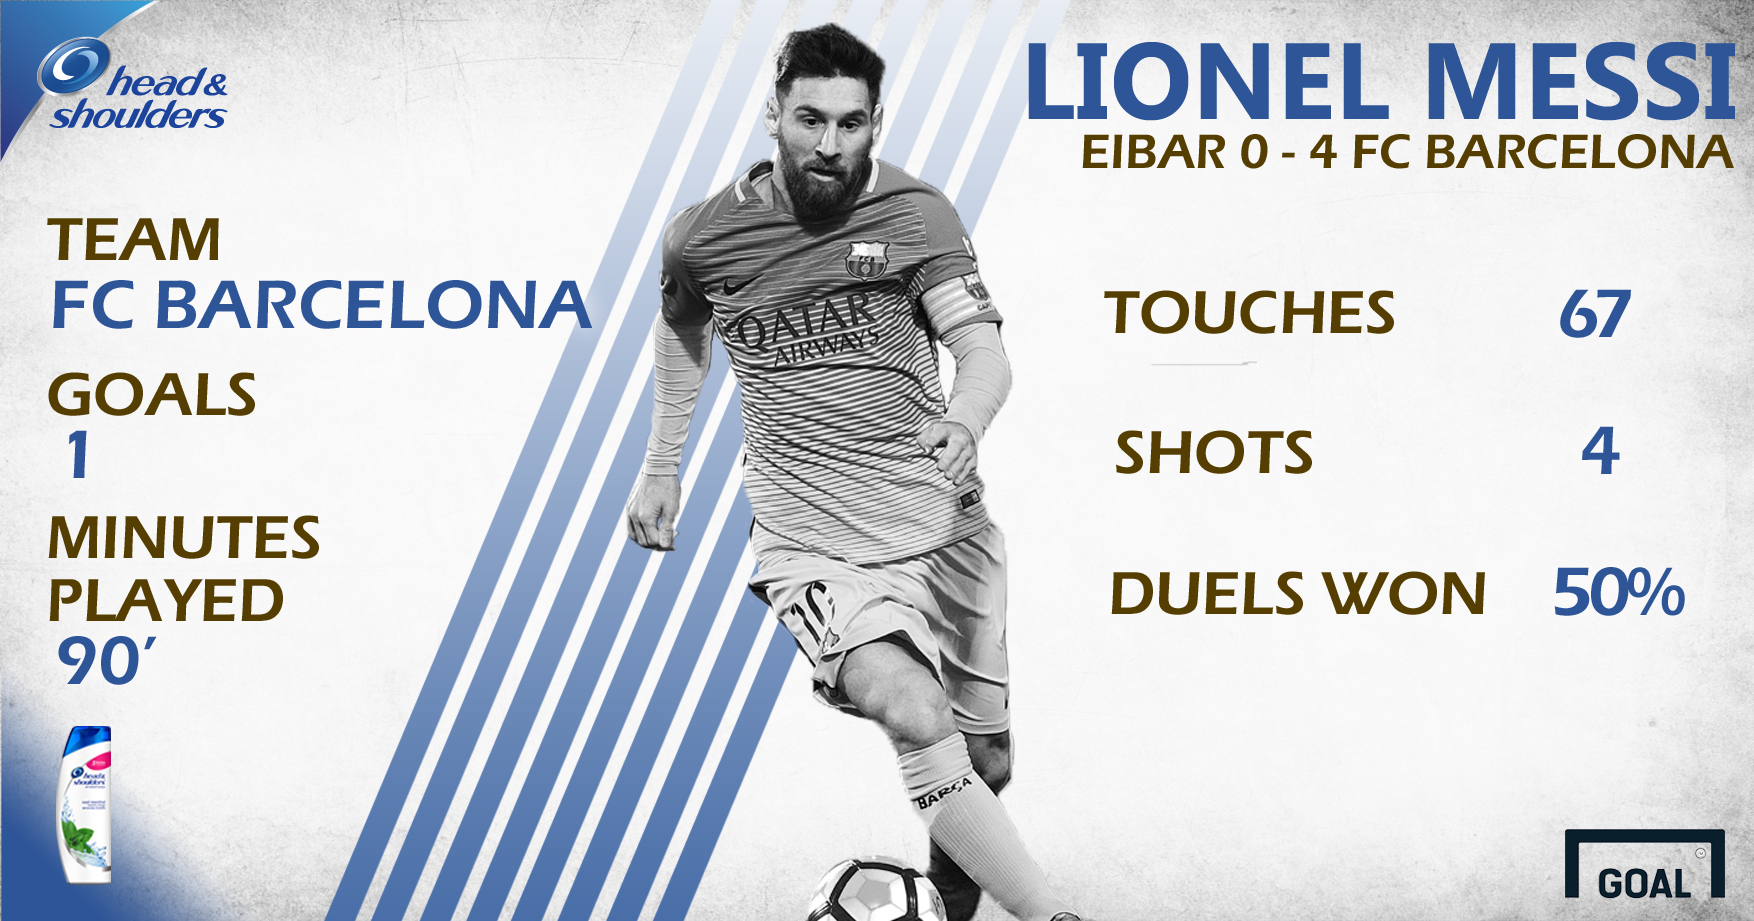 Head & Shoulders Lionel Messi GFX